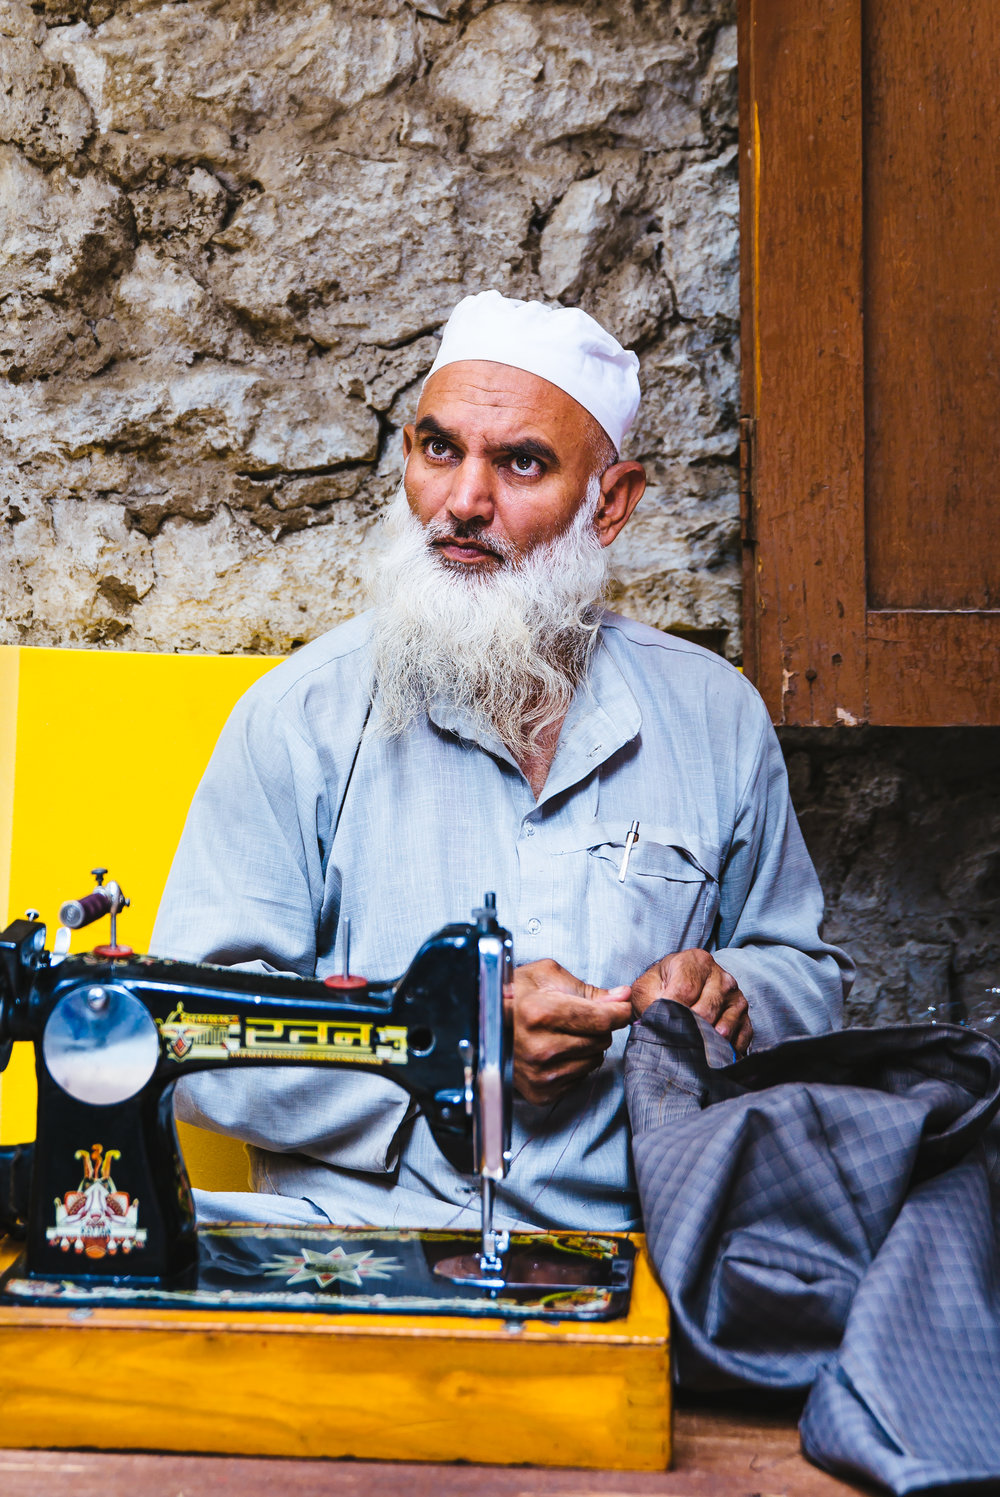 tailor in Leh, India